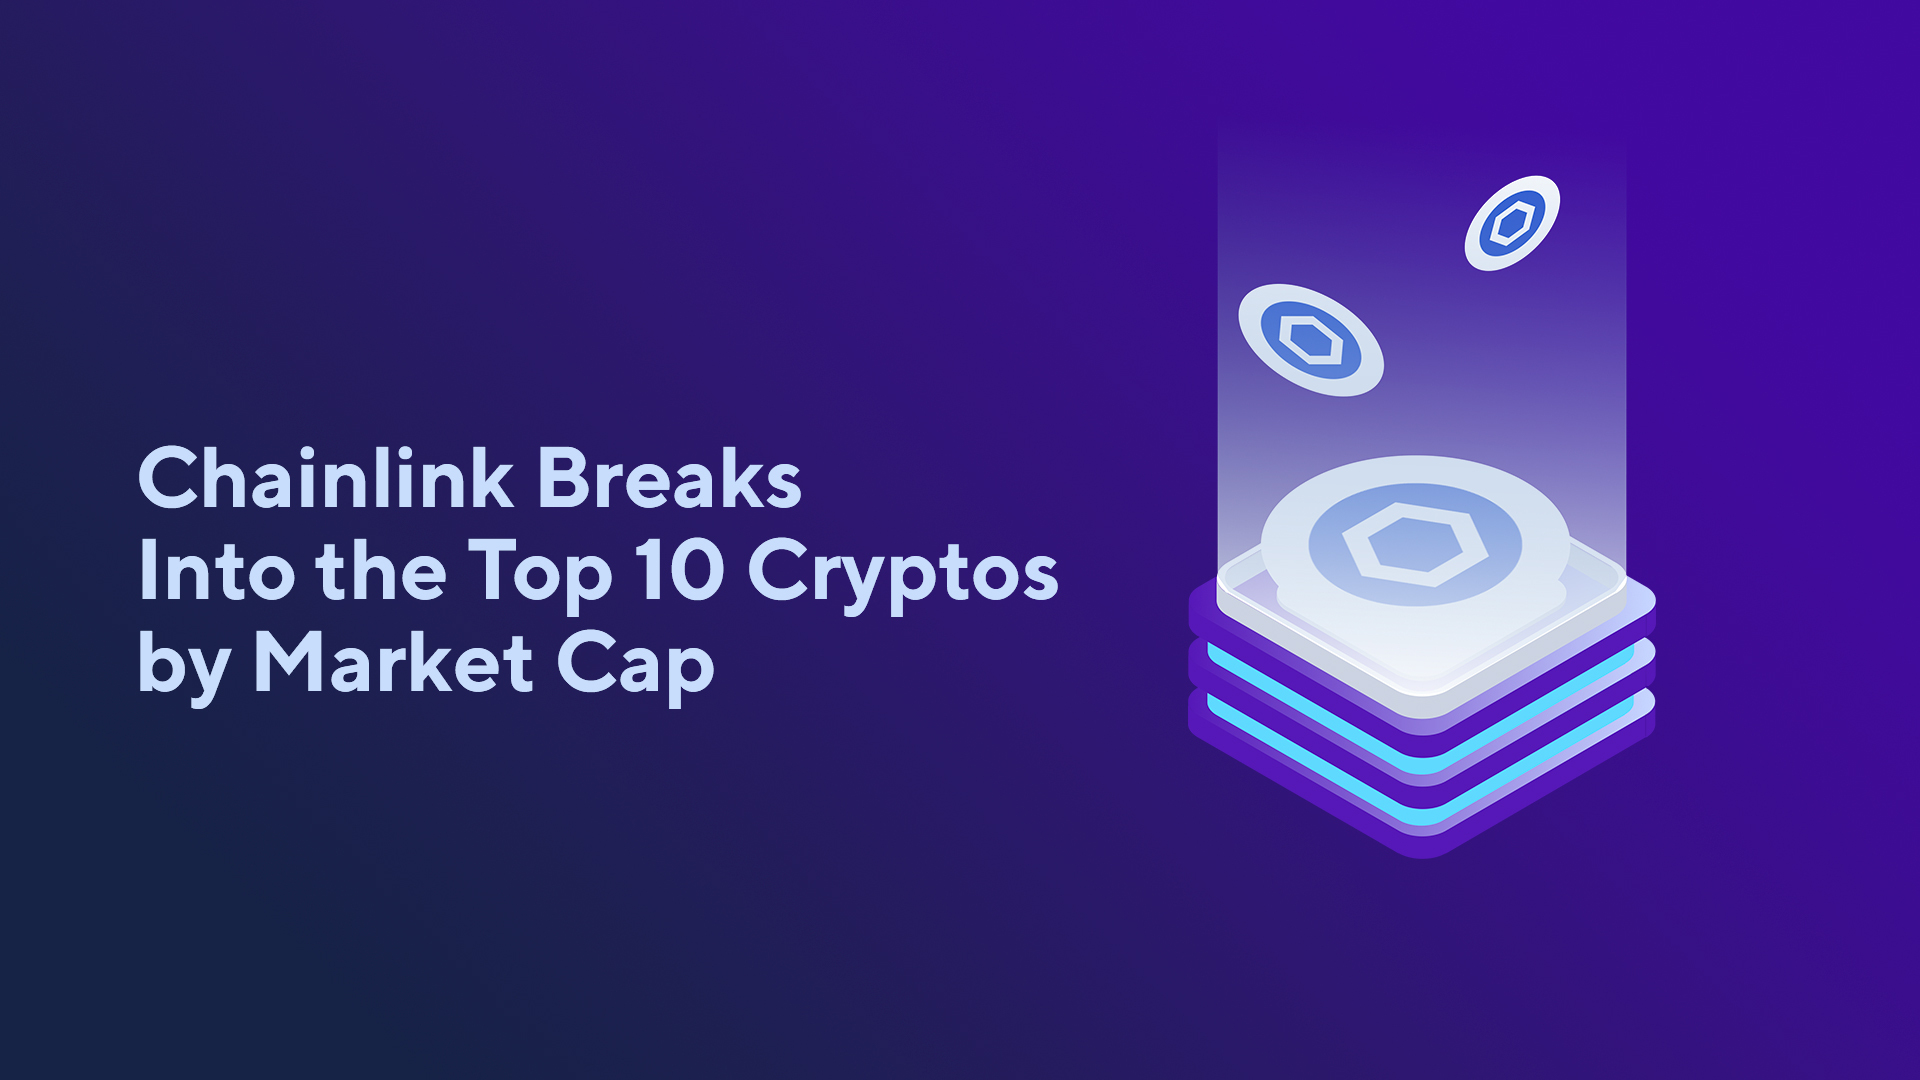 Chainlink Breaks Into the Top 10 Cryptos by Market Cap